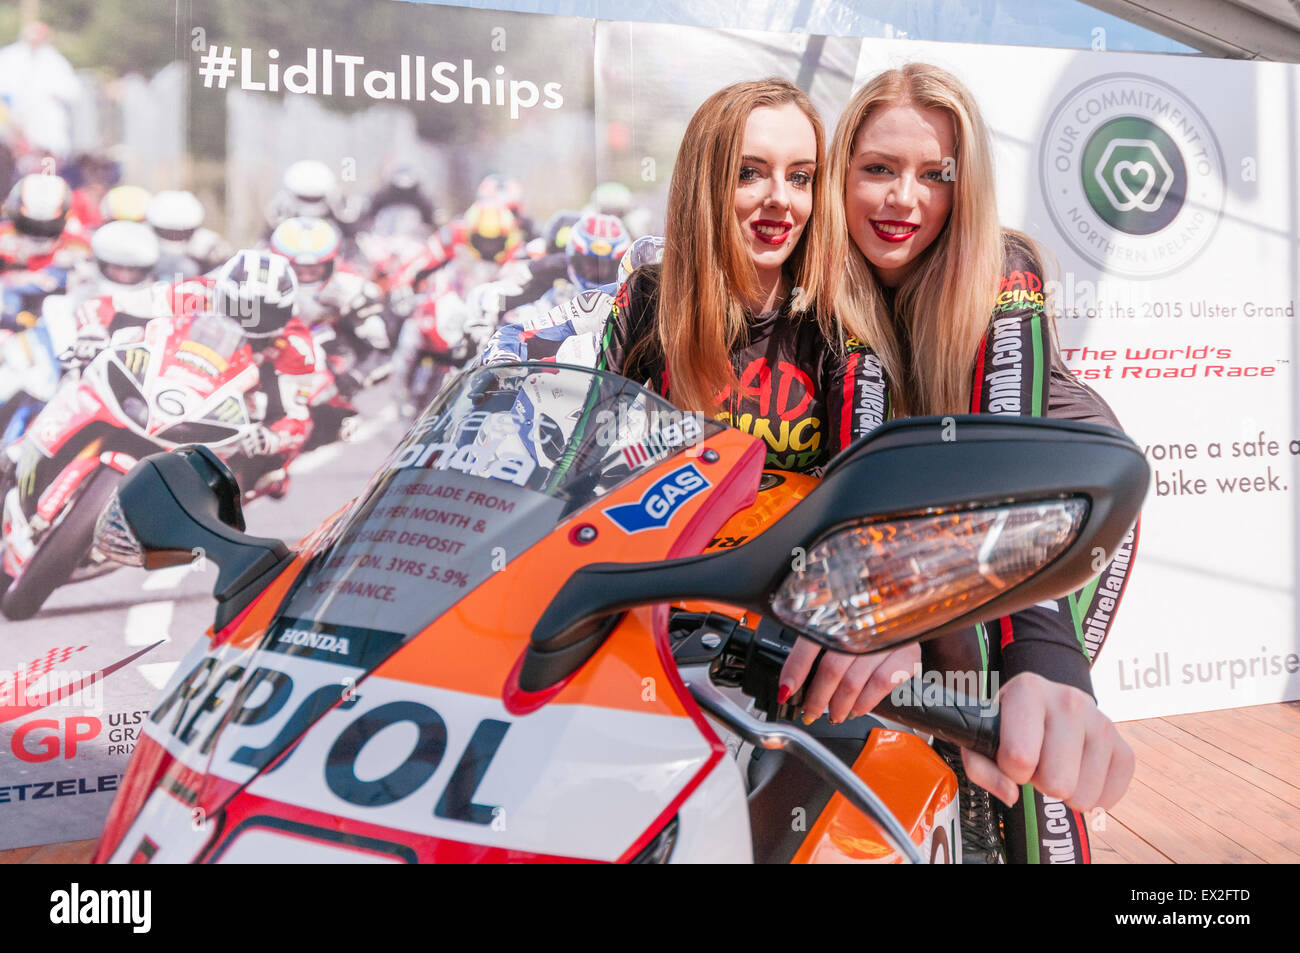 Two PR women dressed in racing overalls sit on a Repsol motorbike. - Stock Image